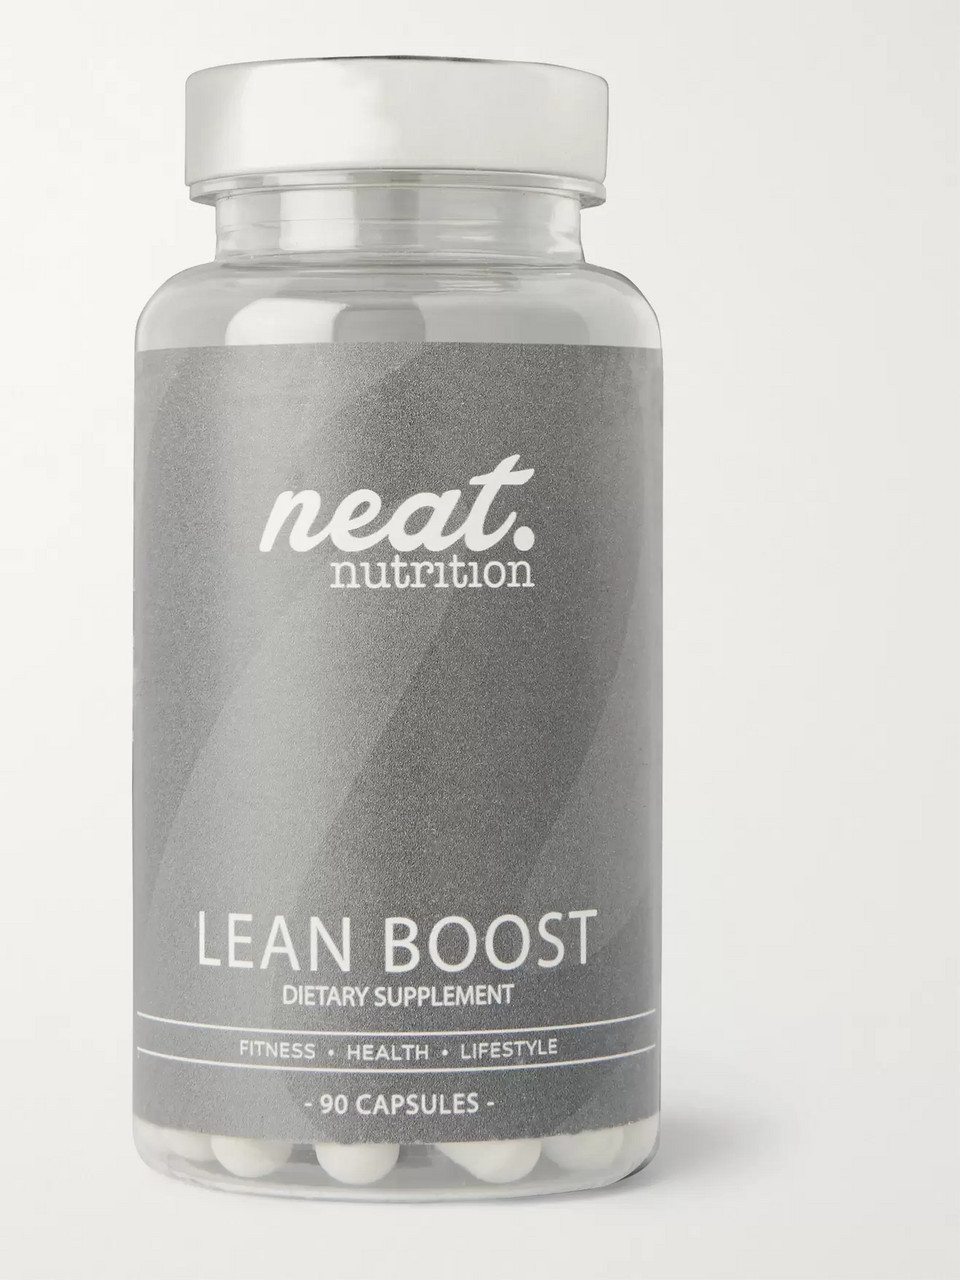 Neat Nutrition Lean Boost Supplement, 90 Capsules